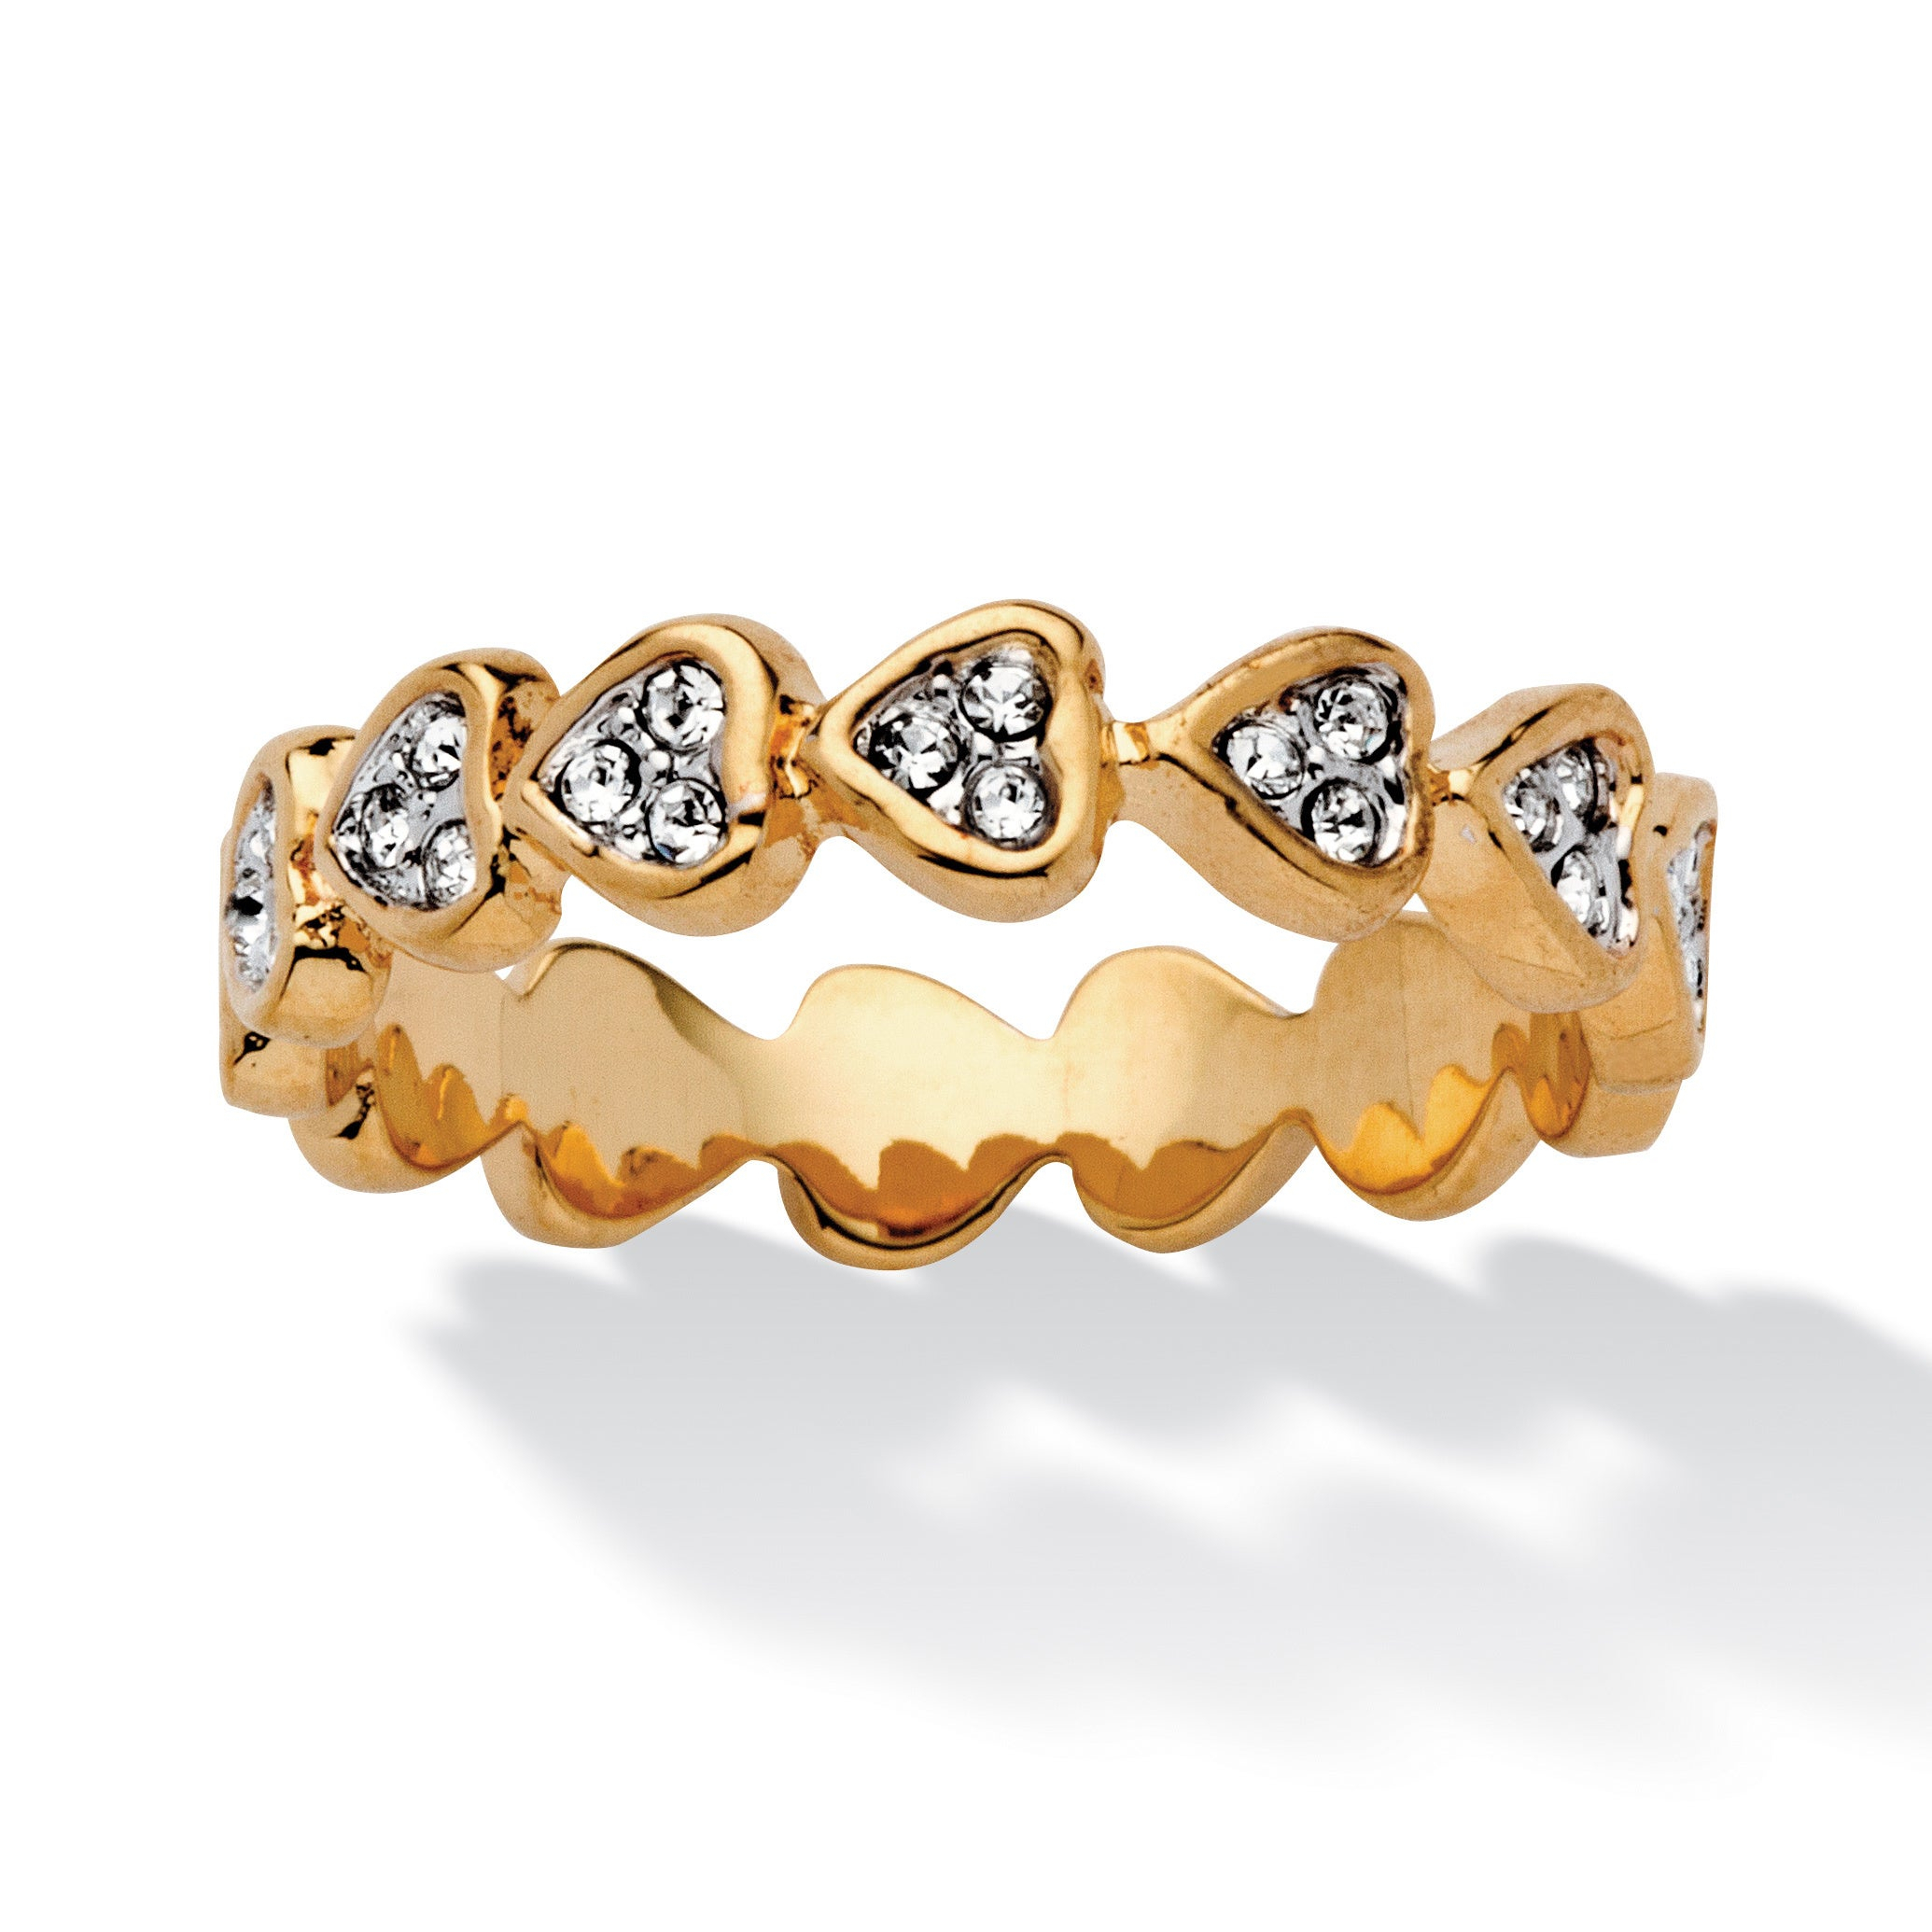 Round Crystal Yellow Gold Plated Band Of Hearts Ring Bold Fashion Pertaining To 2018 Band Of Hearts Rings (View 15 of 25)